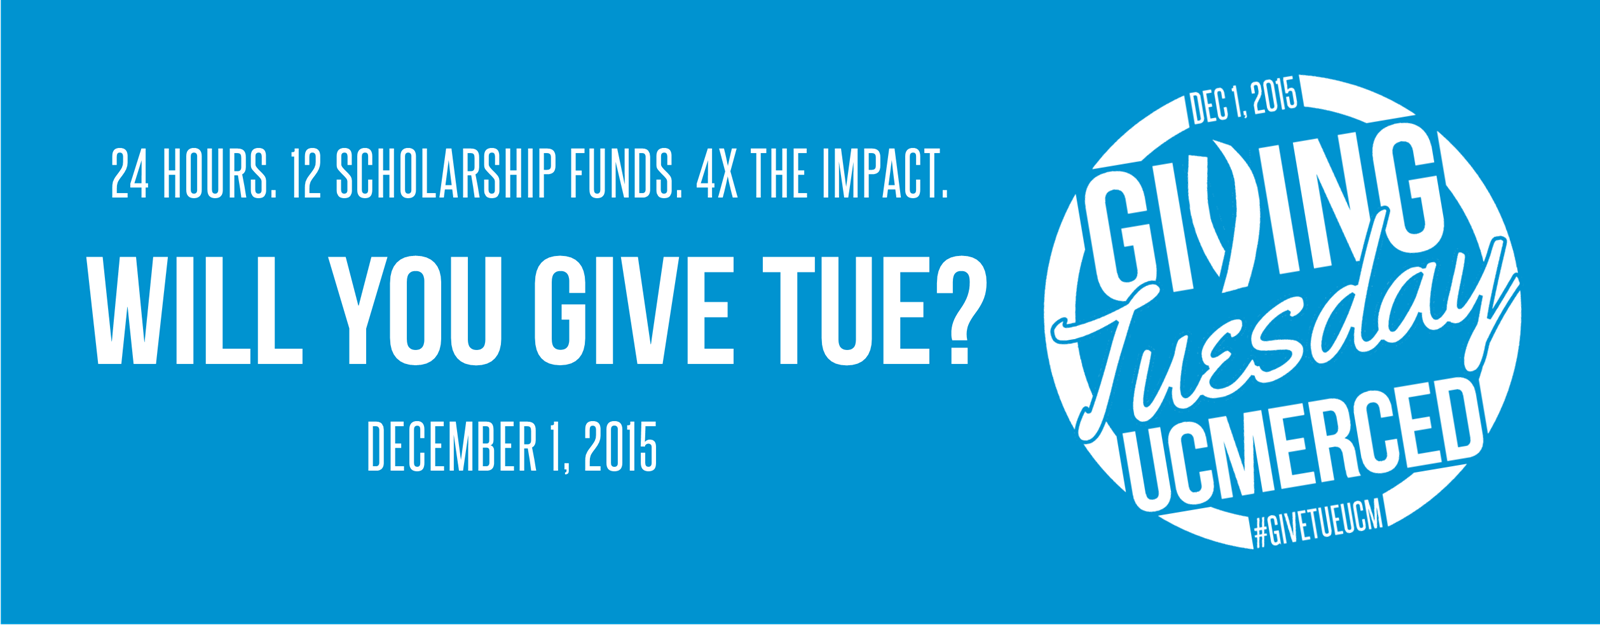 Will You Give Tue? #GIVETUEUCM